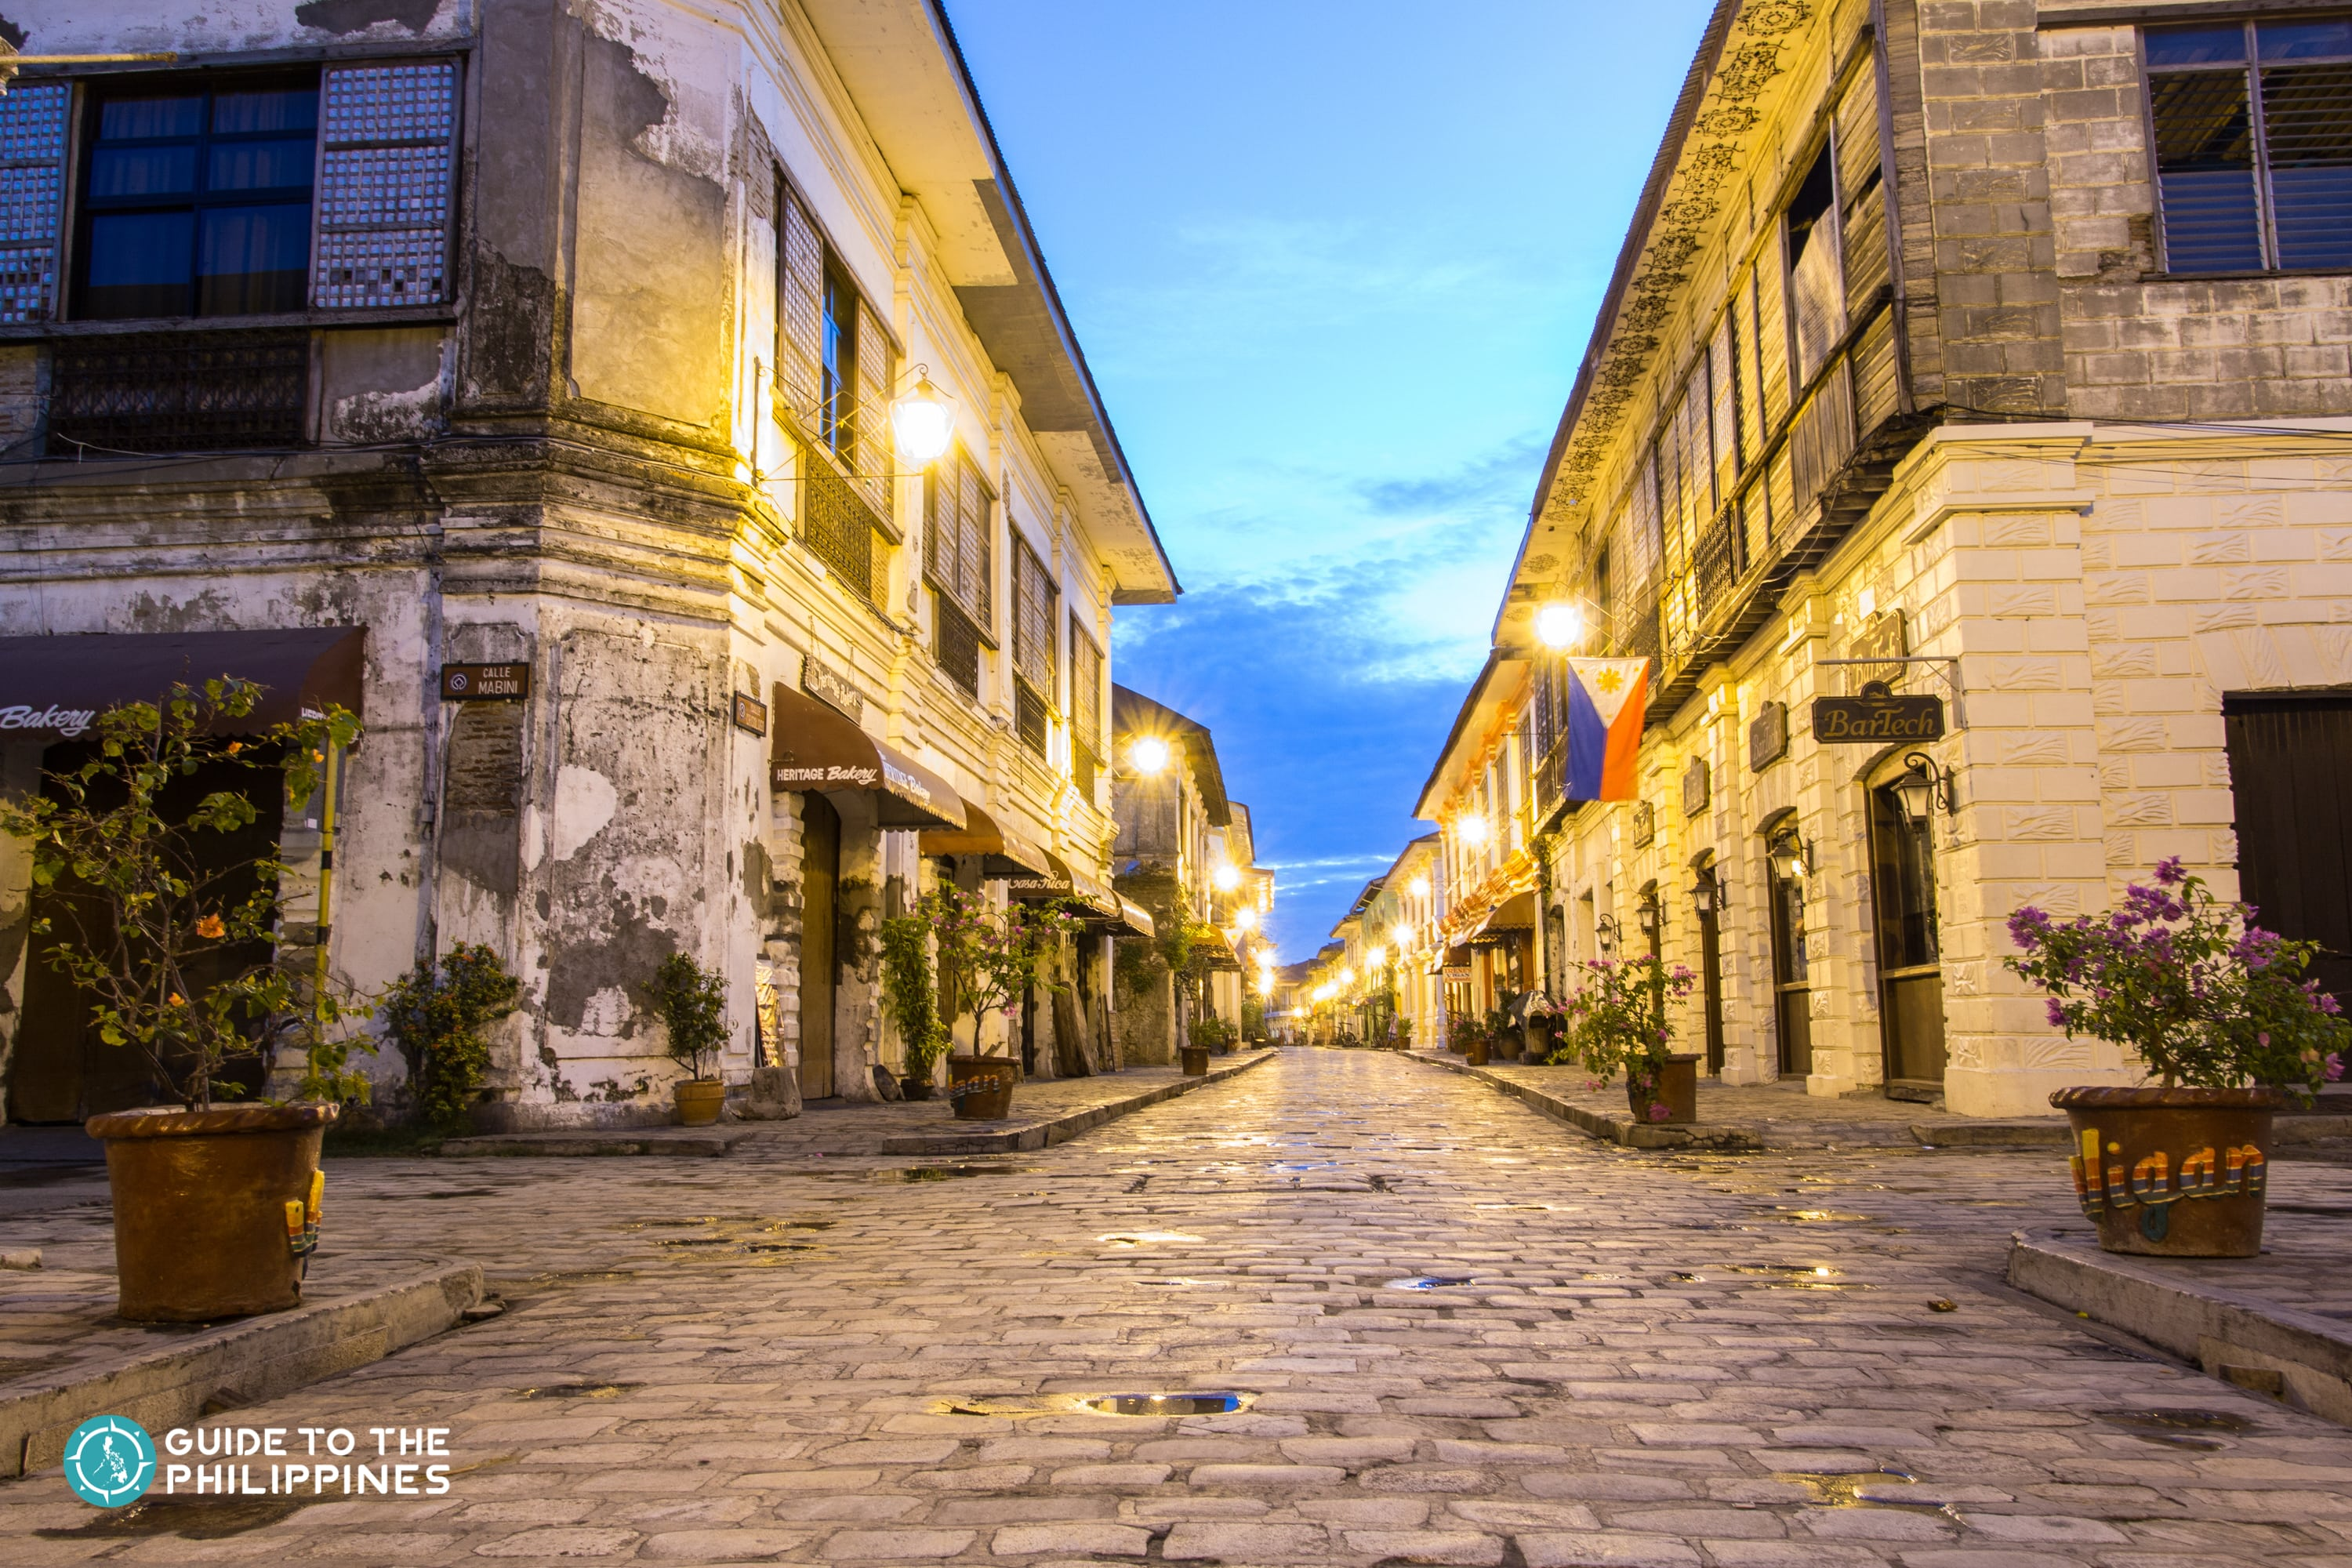 Spanish style streets of Calle Crisologo in Vigan